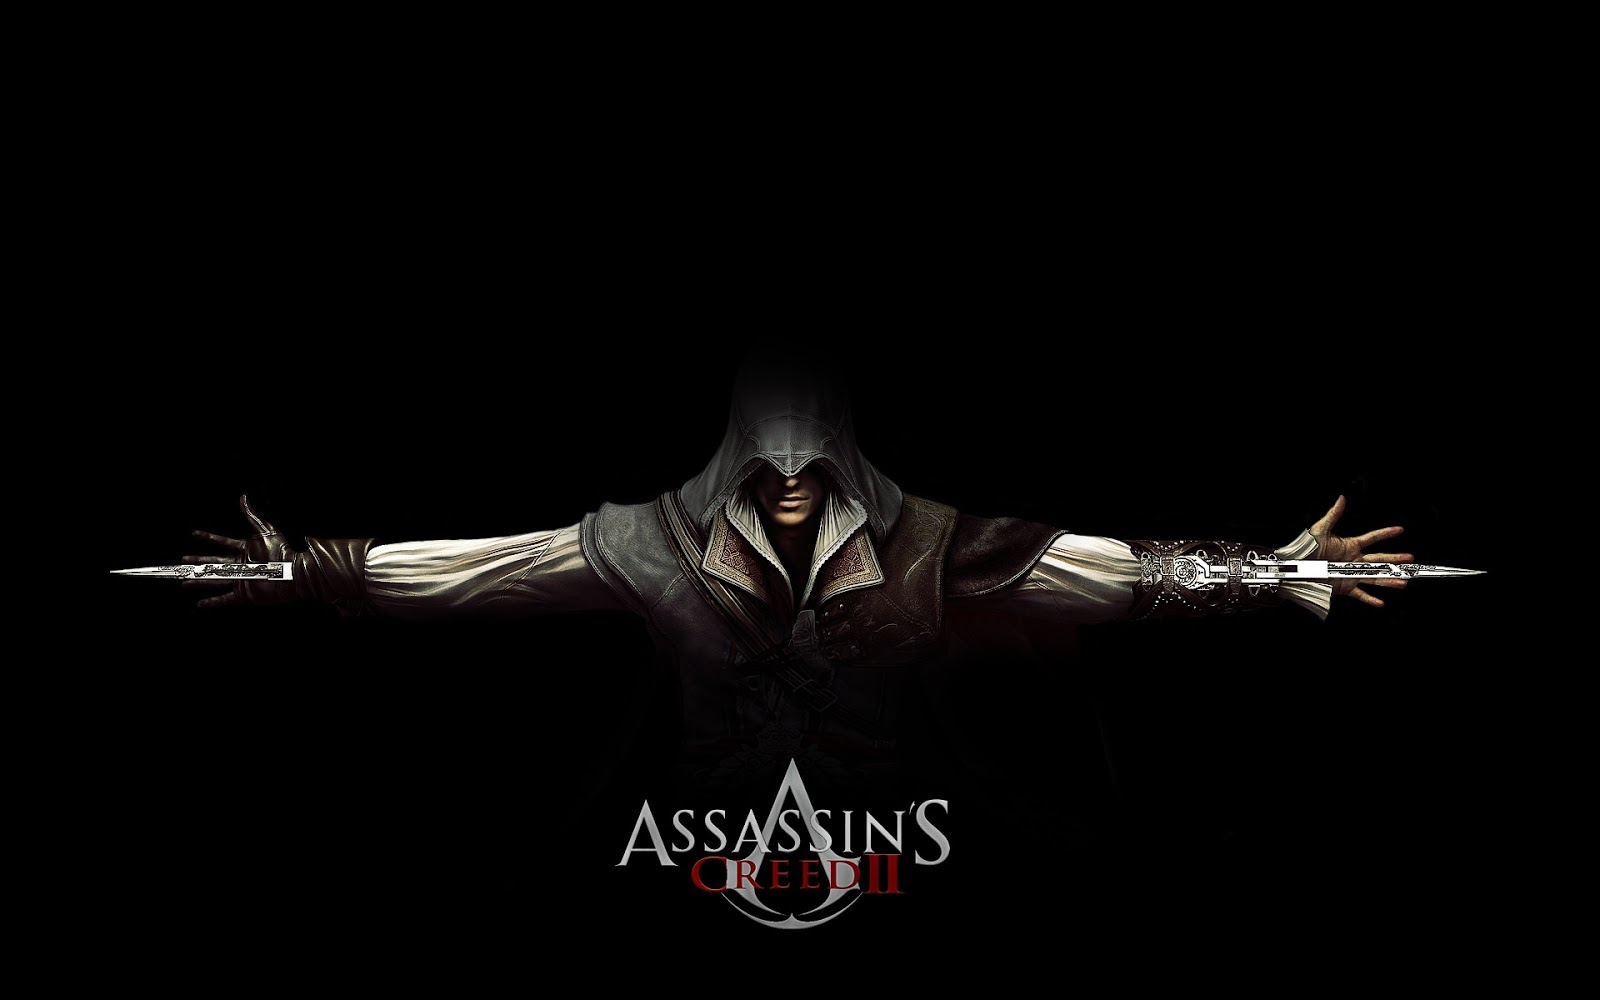 Assassins Creed II Black Background